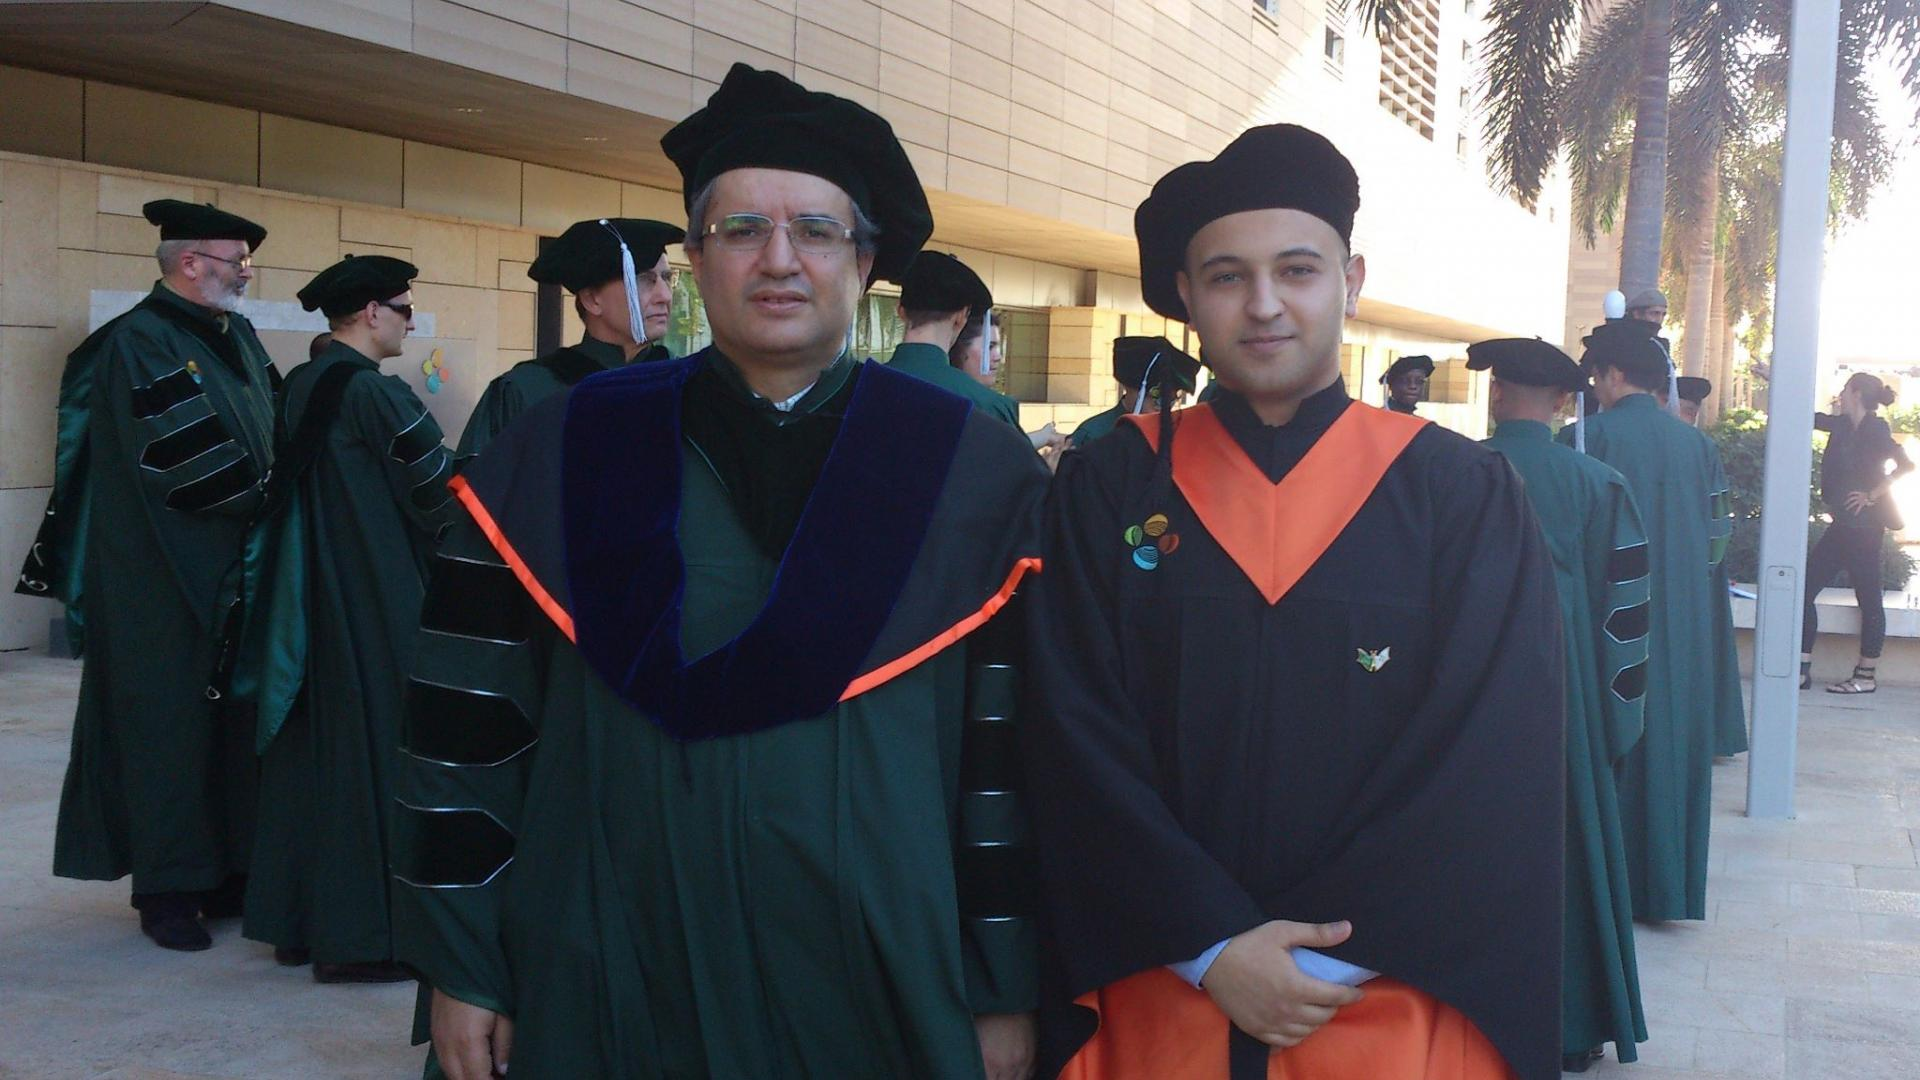 Ahmad M. Al-Sharoa With Professor Slim-Alouini On His Graduation